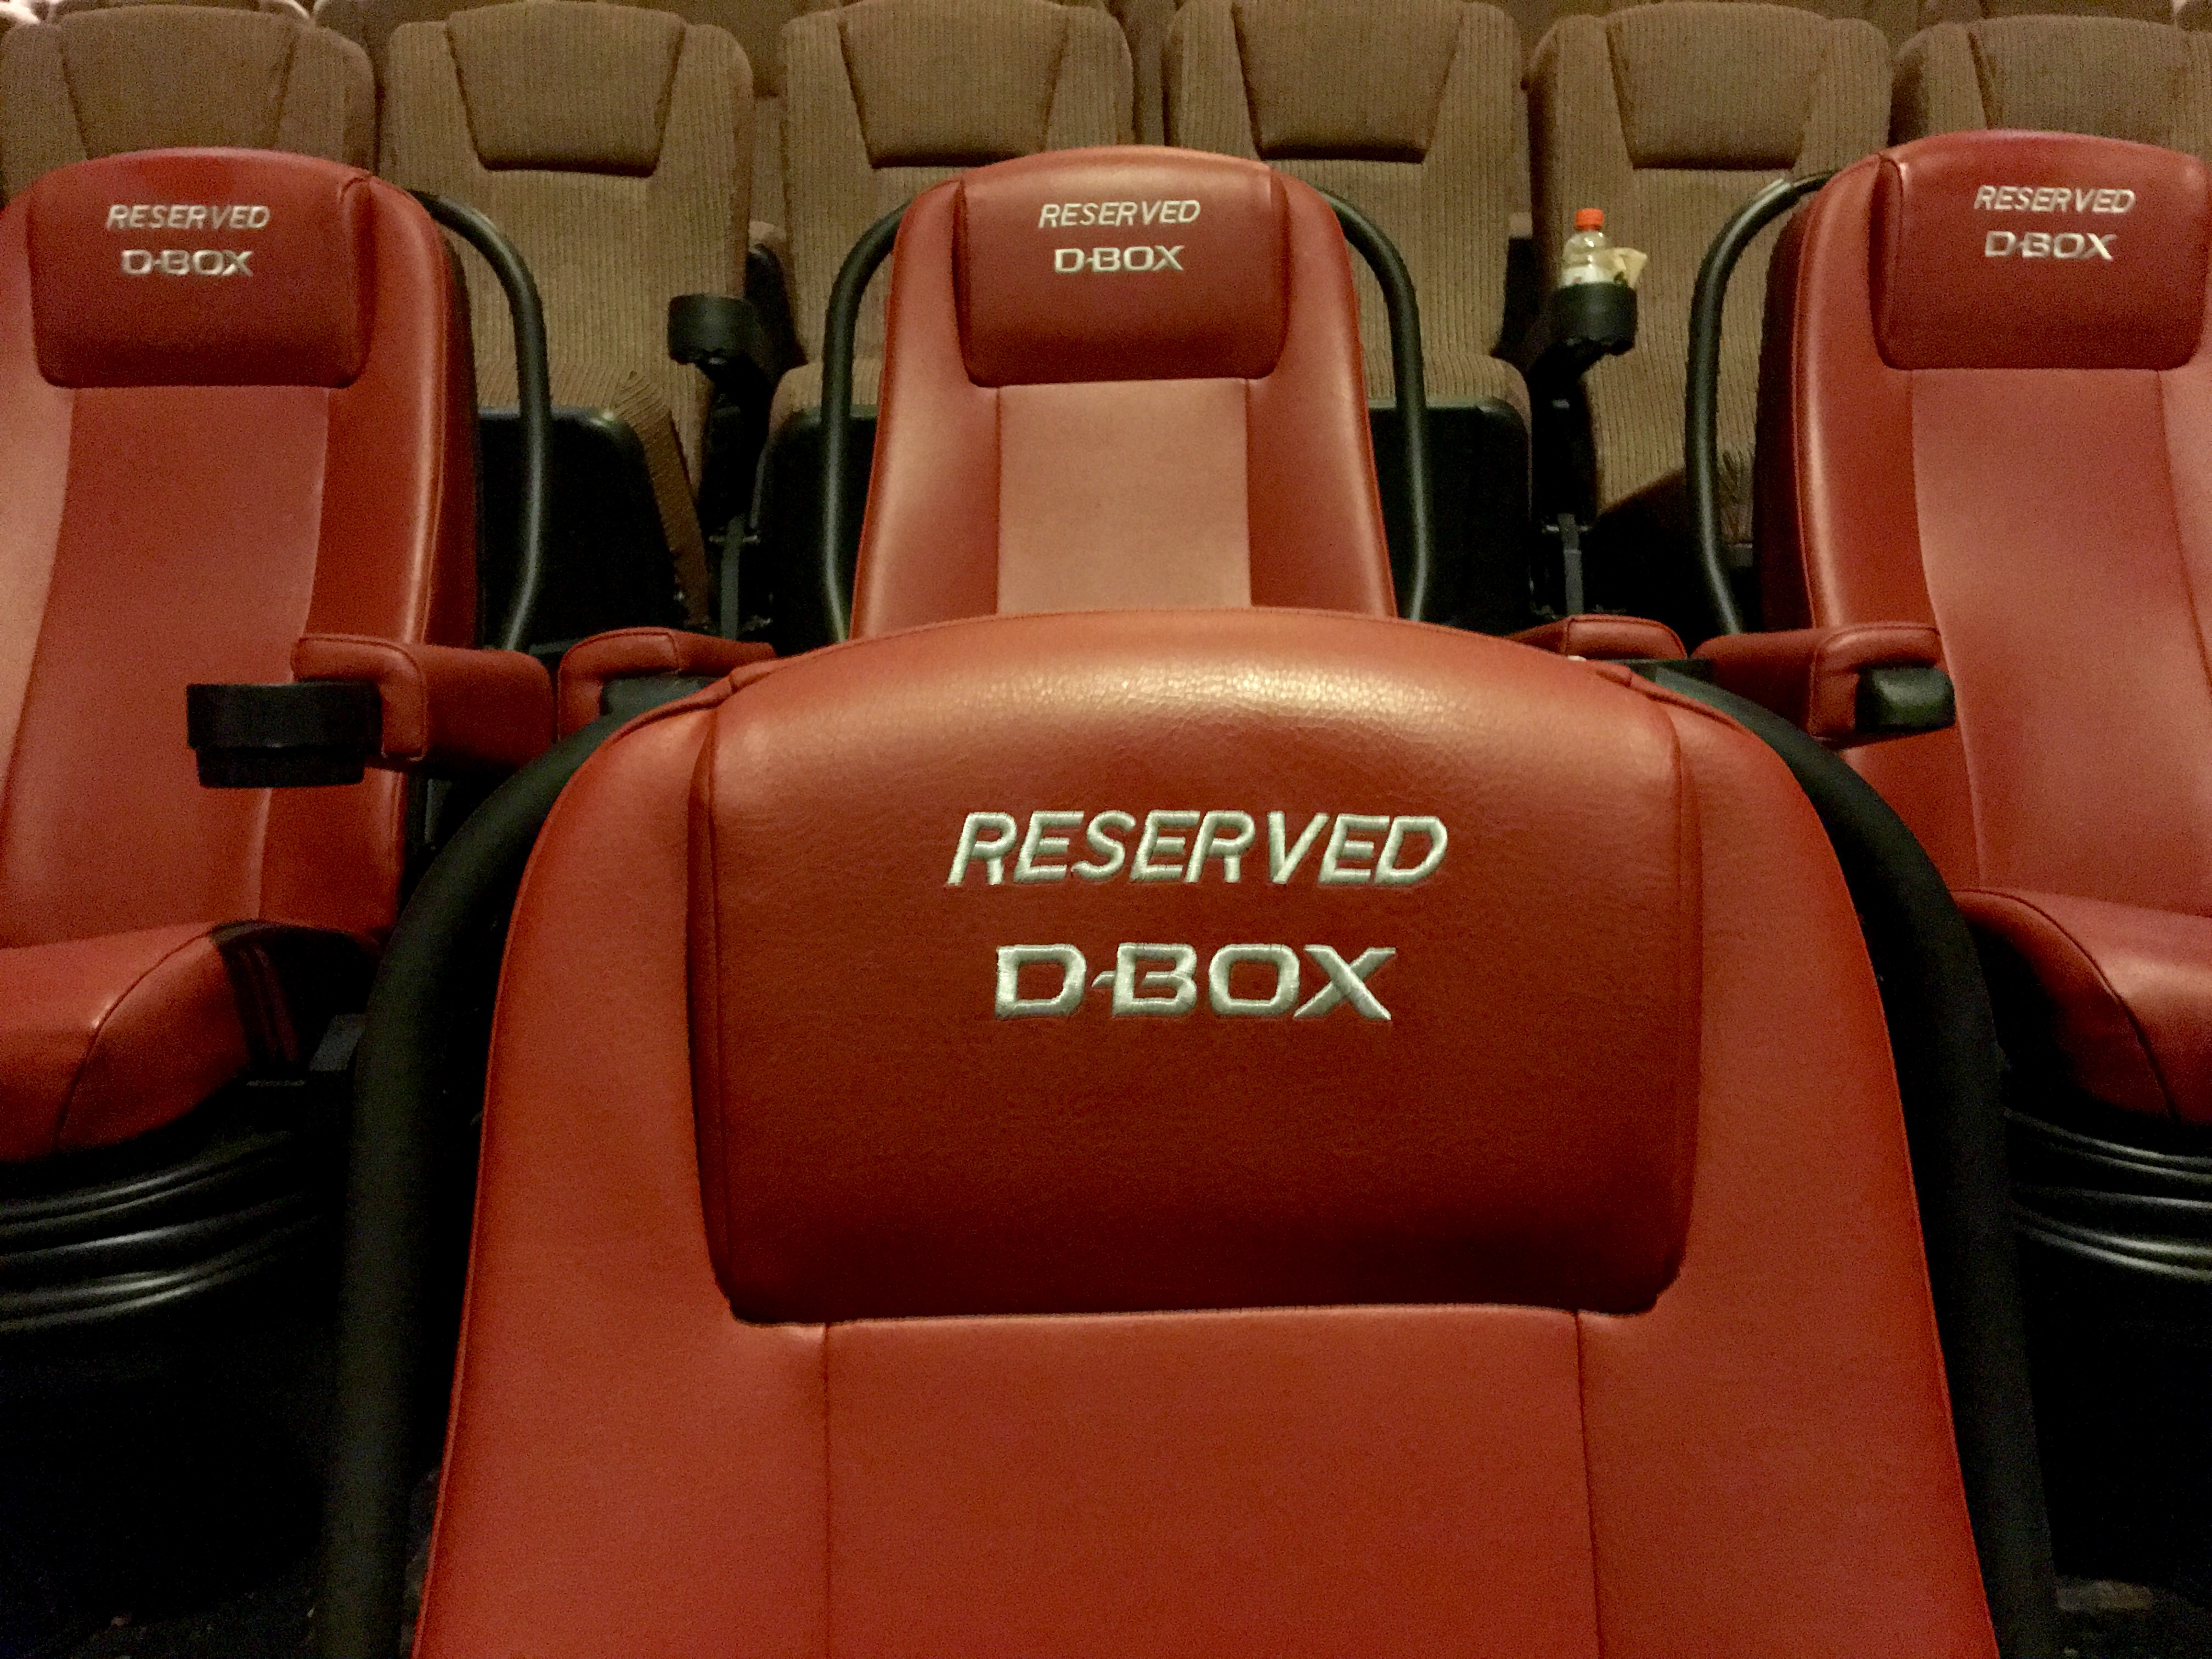 Two Rows of Reserved Seats